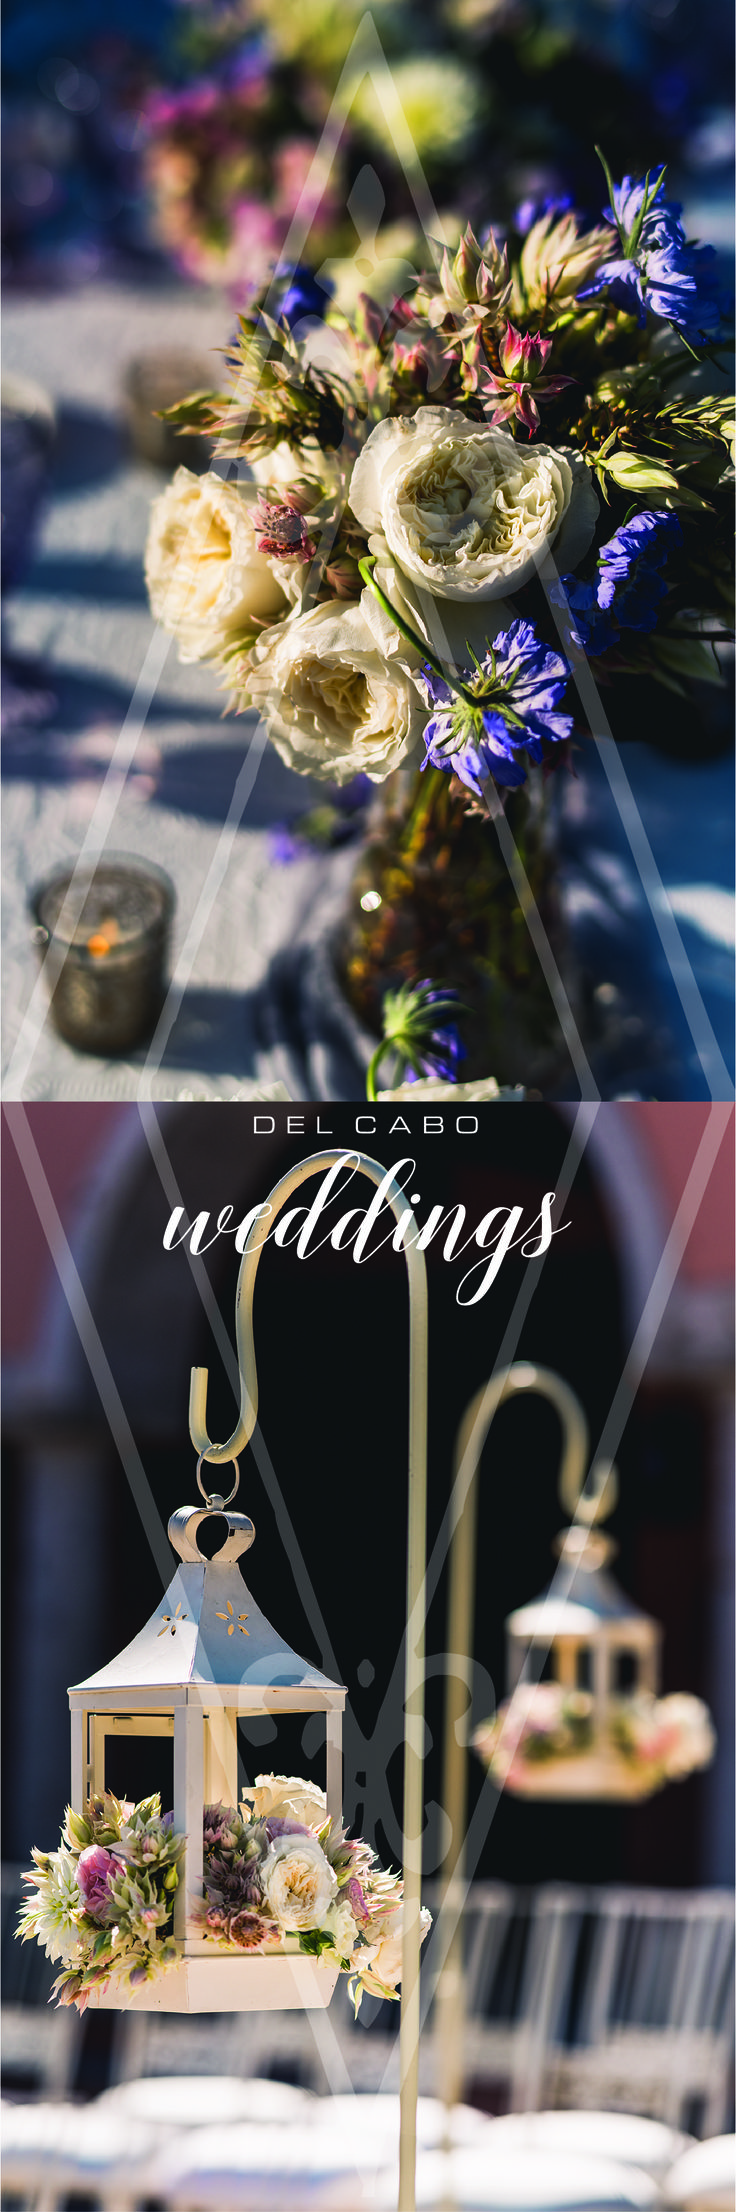 Get ready for your vintage wedding! Del Cabo Weddings has the best décor for that special day! Get inspired in our boards with the best wedding ideas!